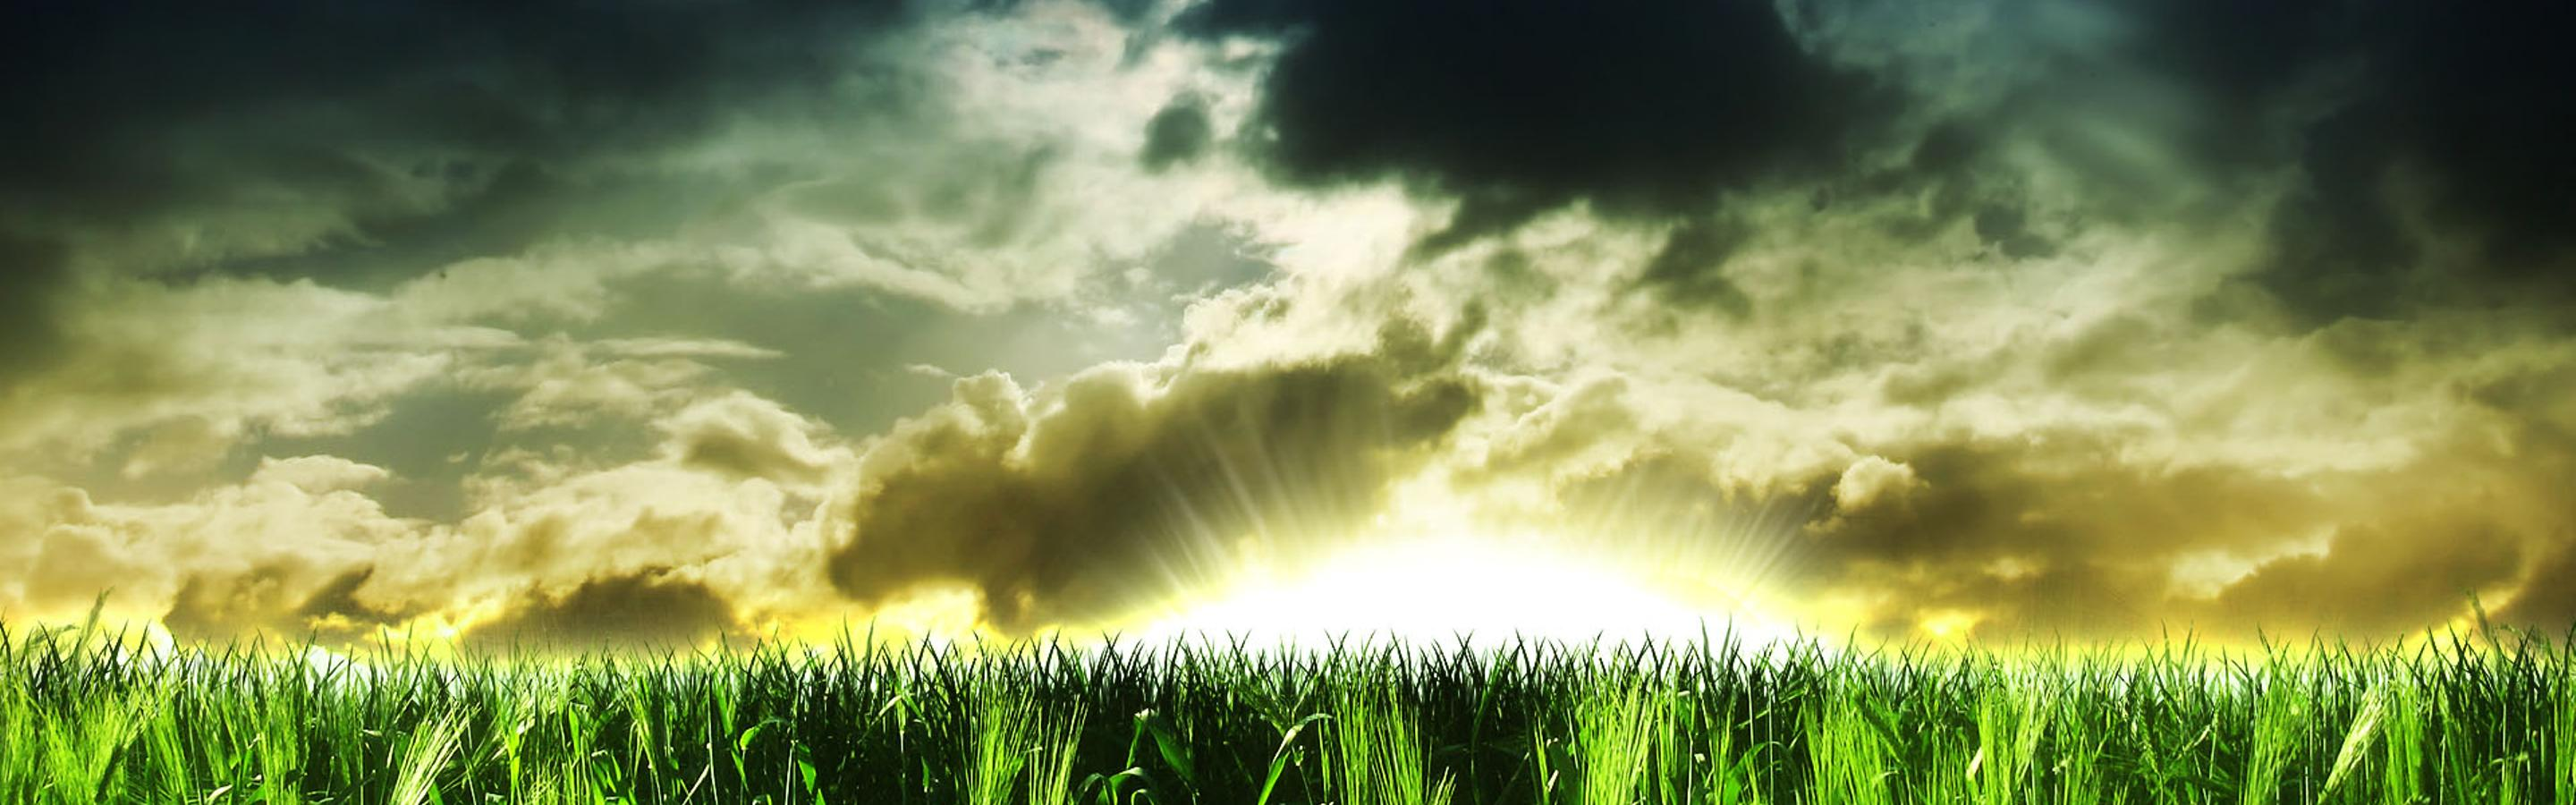 abstract wallpaper - green field and big sun wallpaper download 2880x900